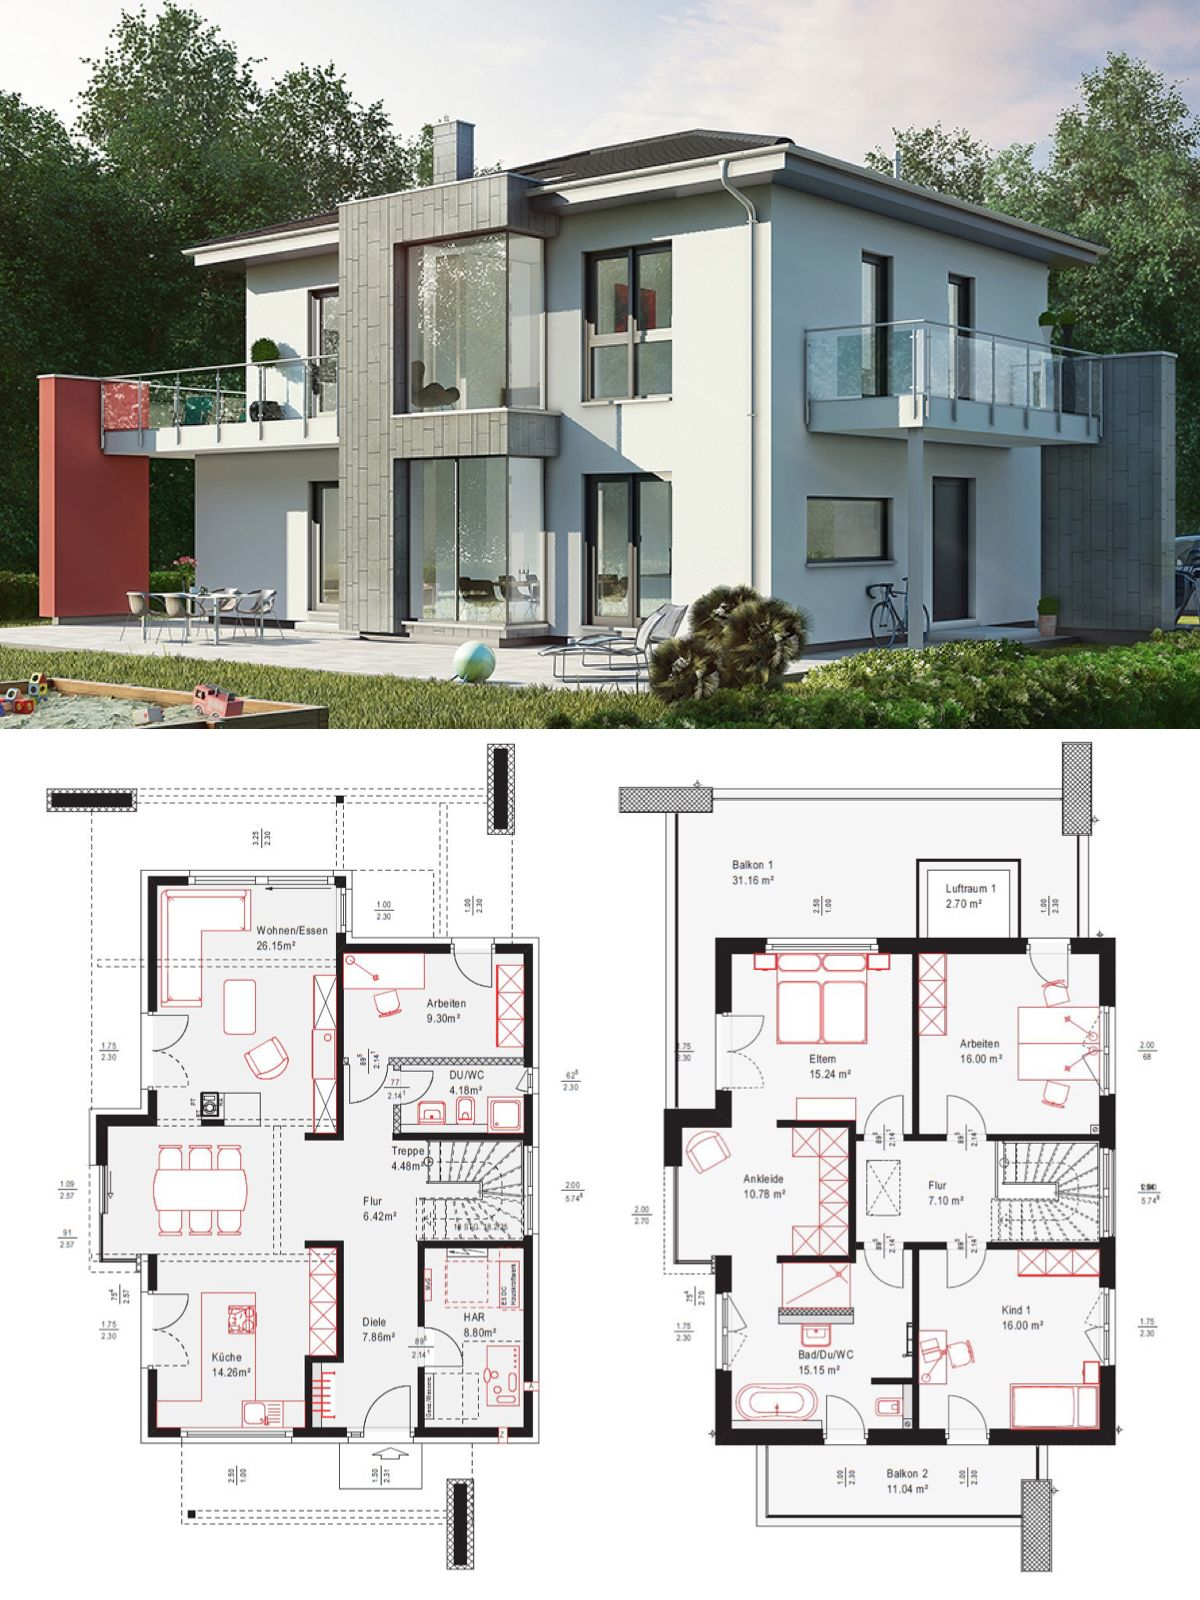 stadtvilla modern mit walmdach architektur loggia fassade rot grau wei einfamilienhaus. Black Bedroom Furniture Sets. Home Design Ideas